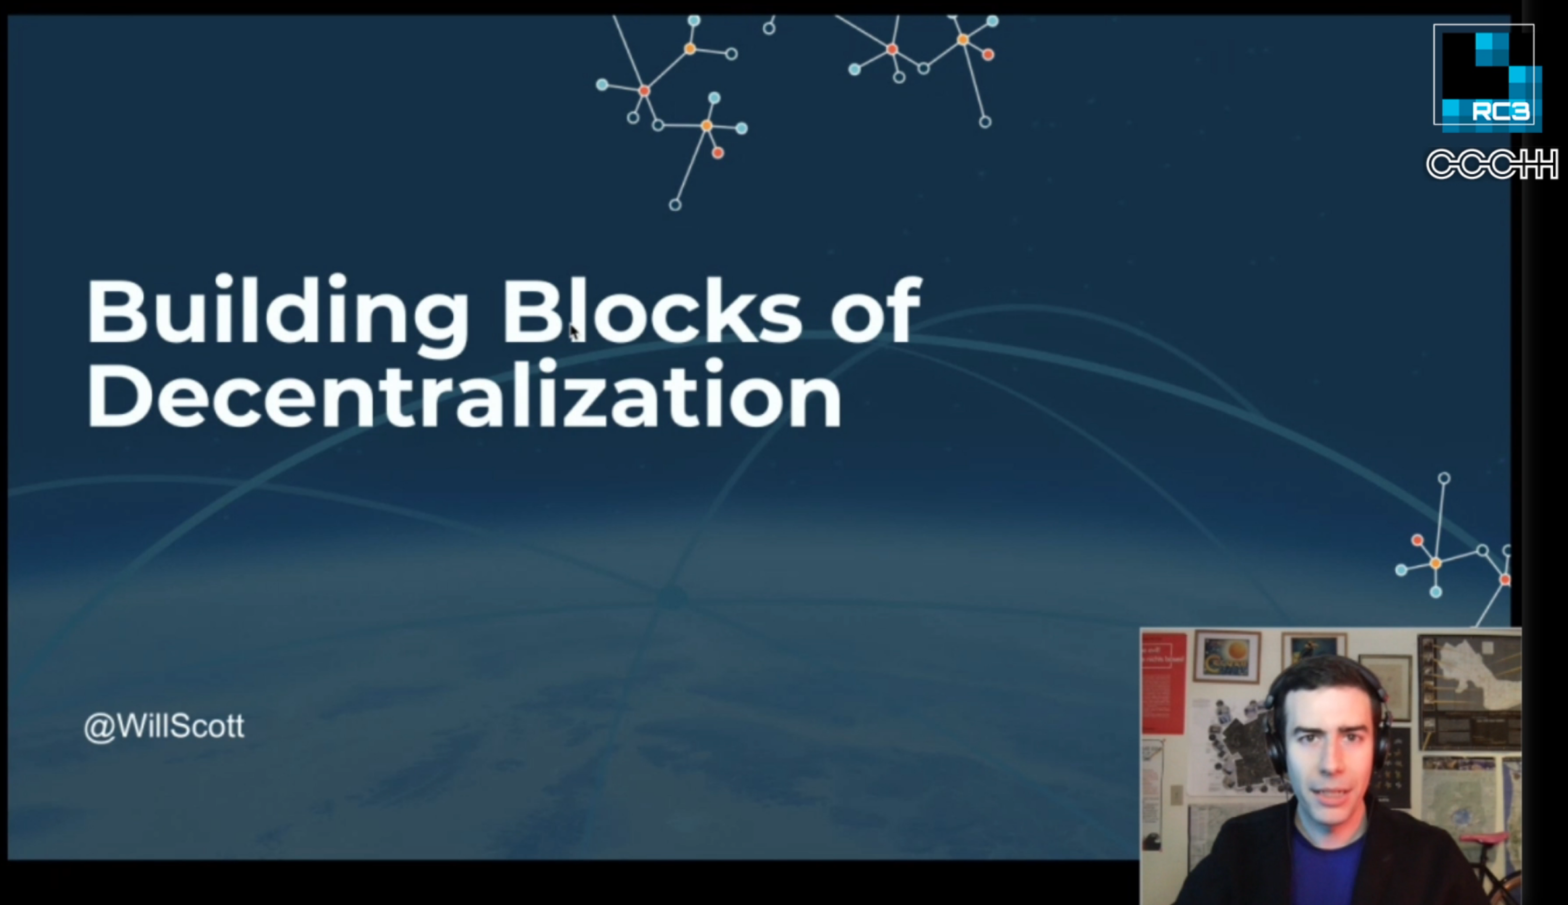 Building Blocks of Decentralization